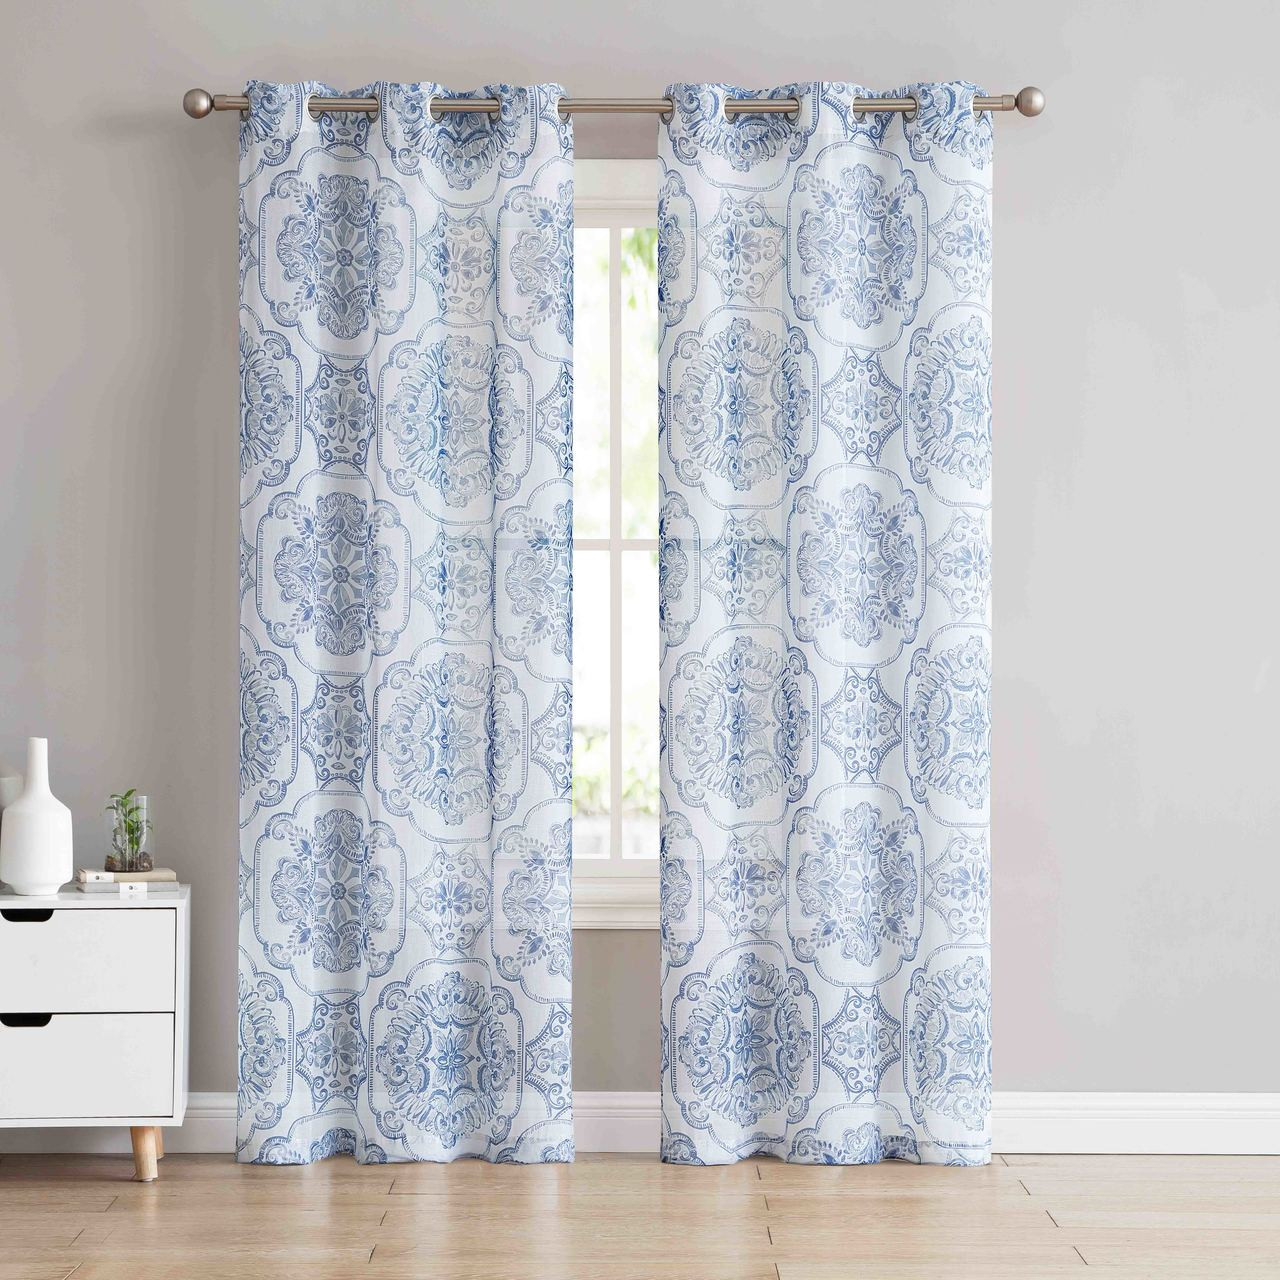 Sheer Grommet Window Curtain Panel Pair With Slate Blue And Off White Medallion Design 84in L My Infinity Store